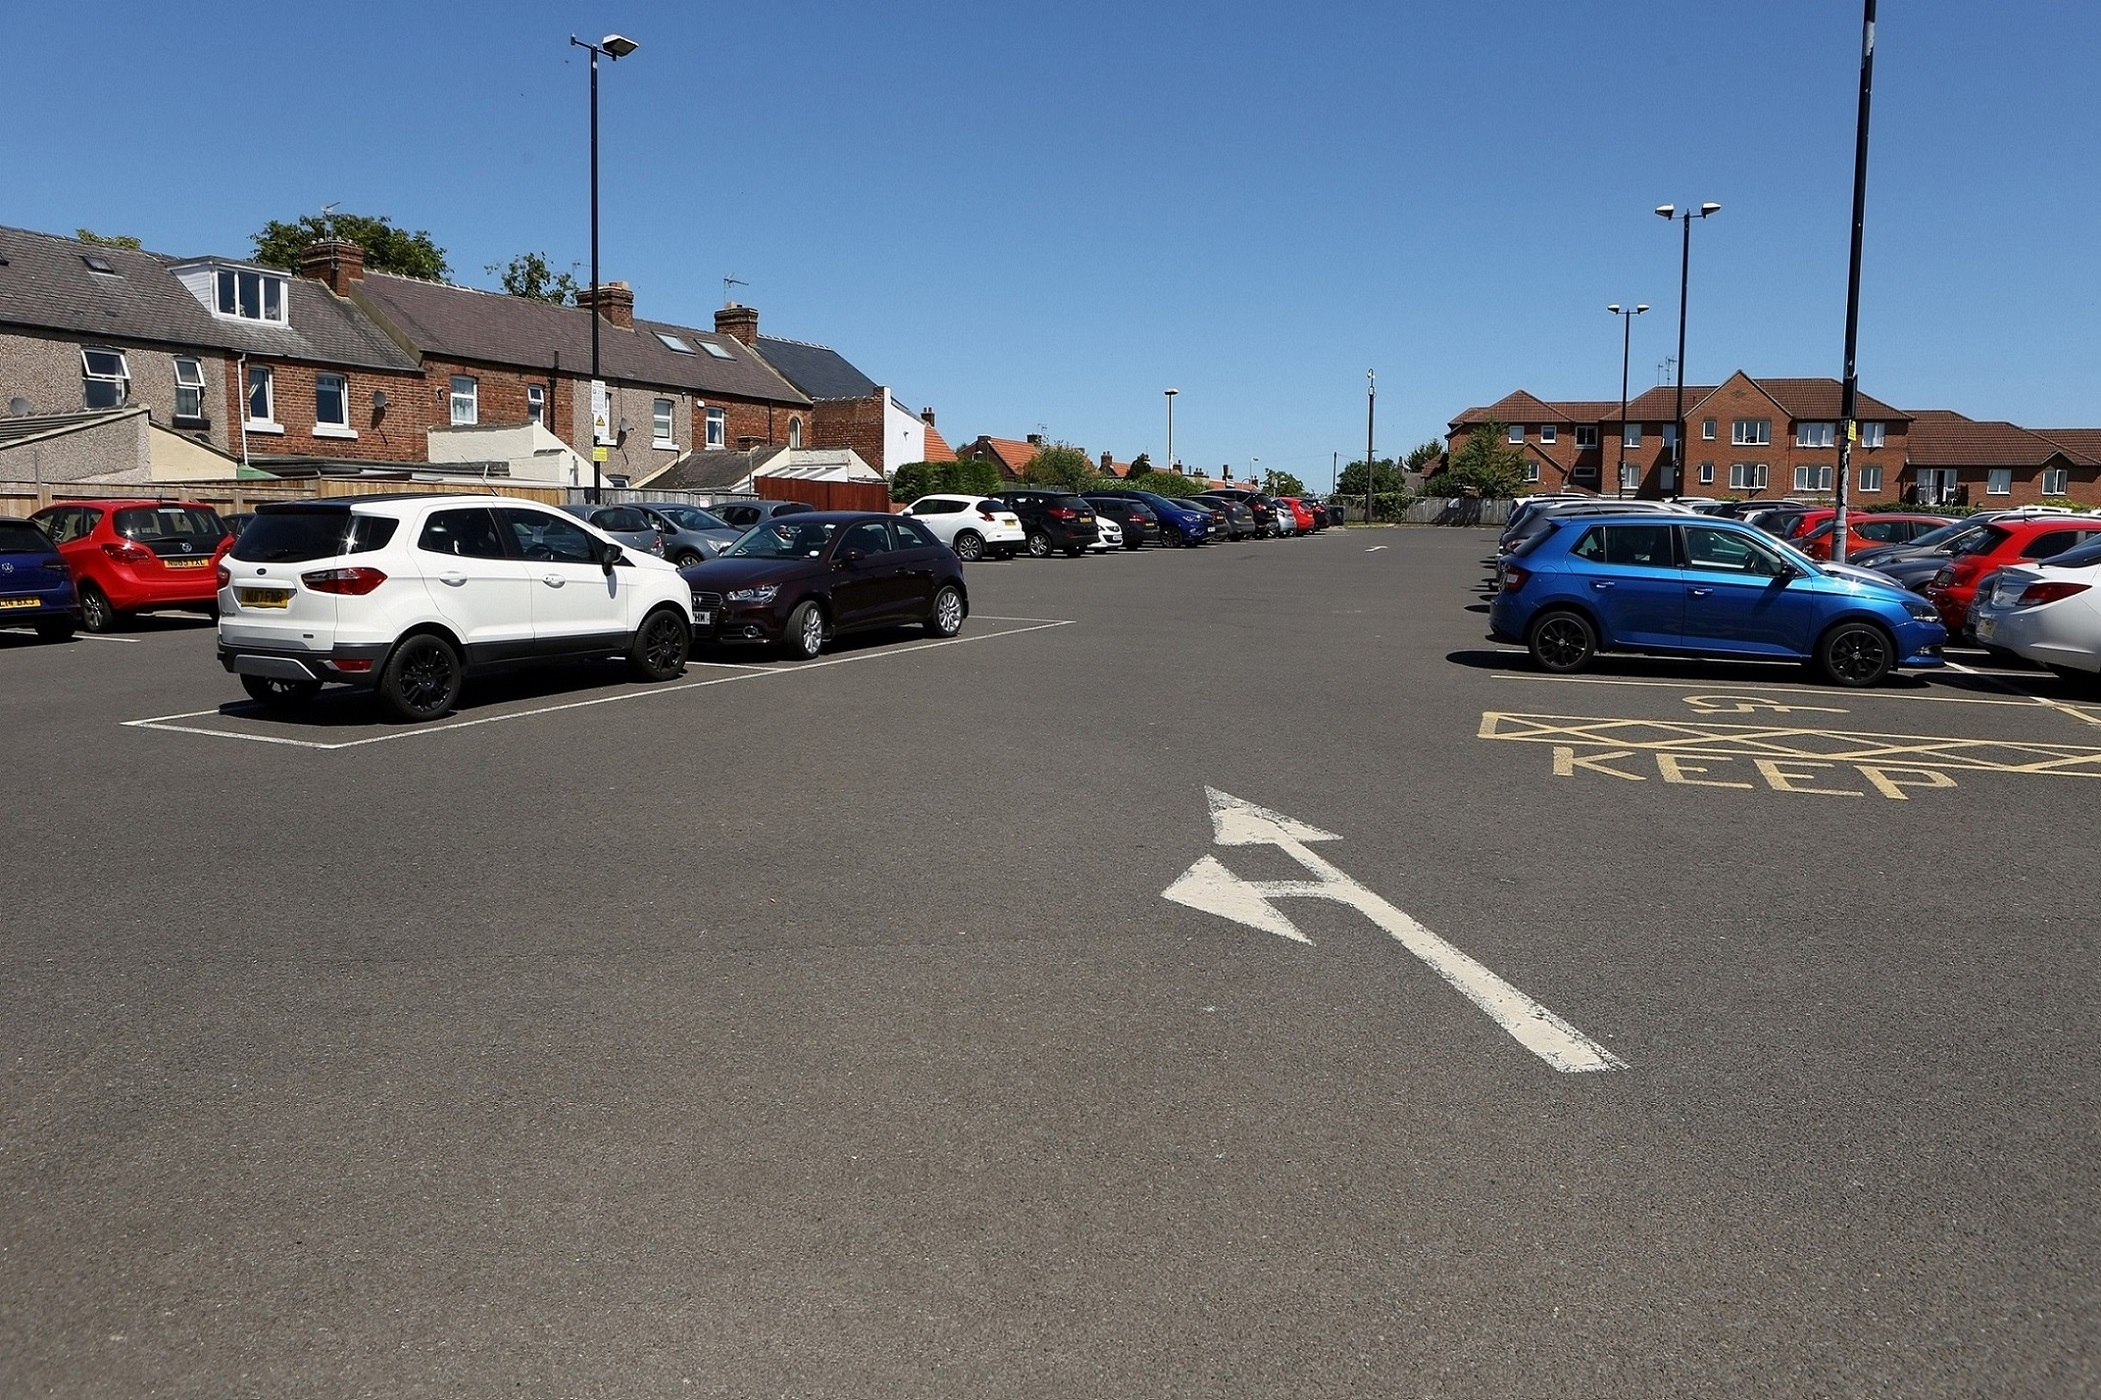 CAR PARK TO BE UPGRADED AS TREADMILLS SCHEME MOVES FORWARD